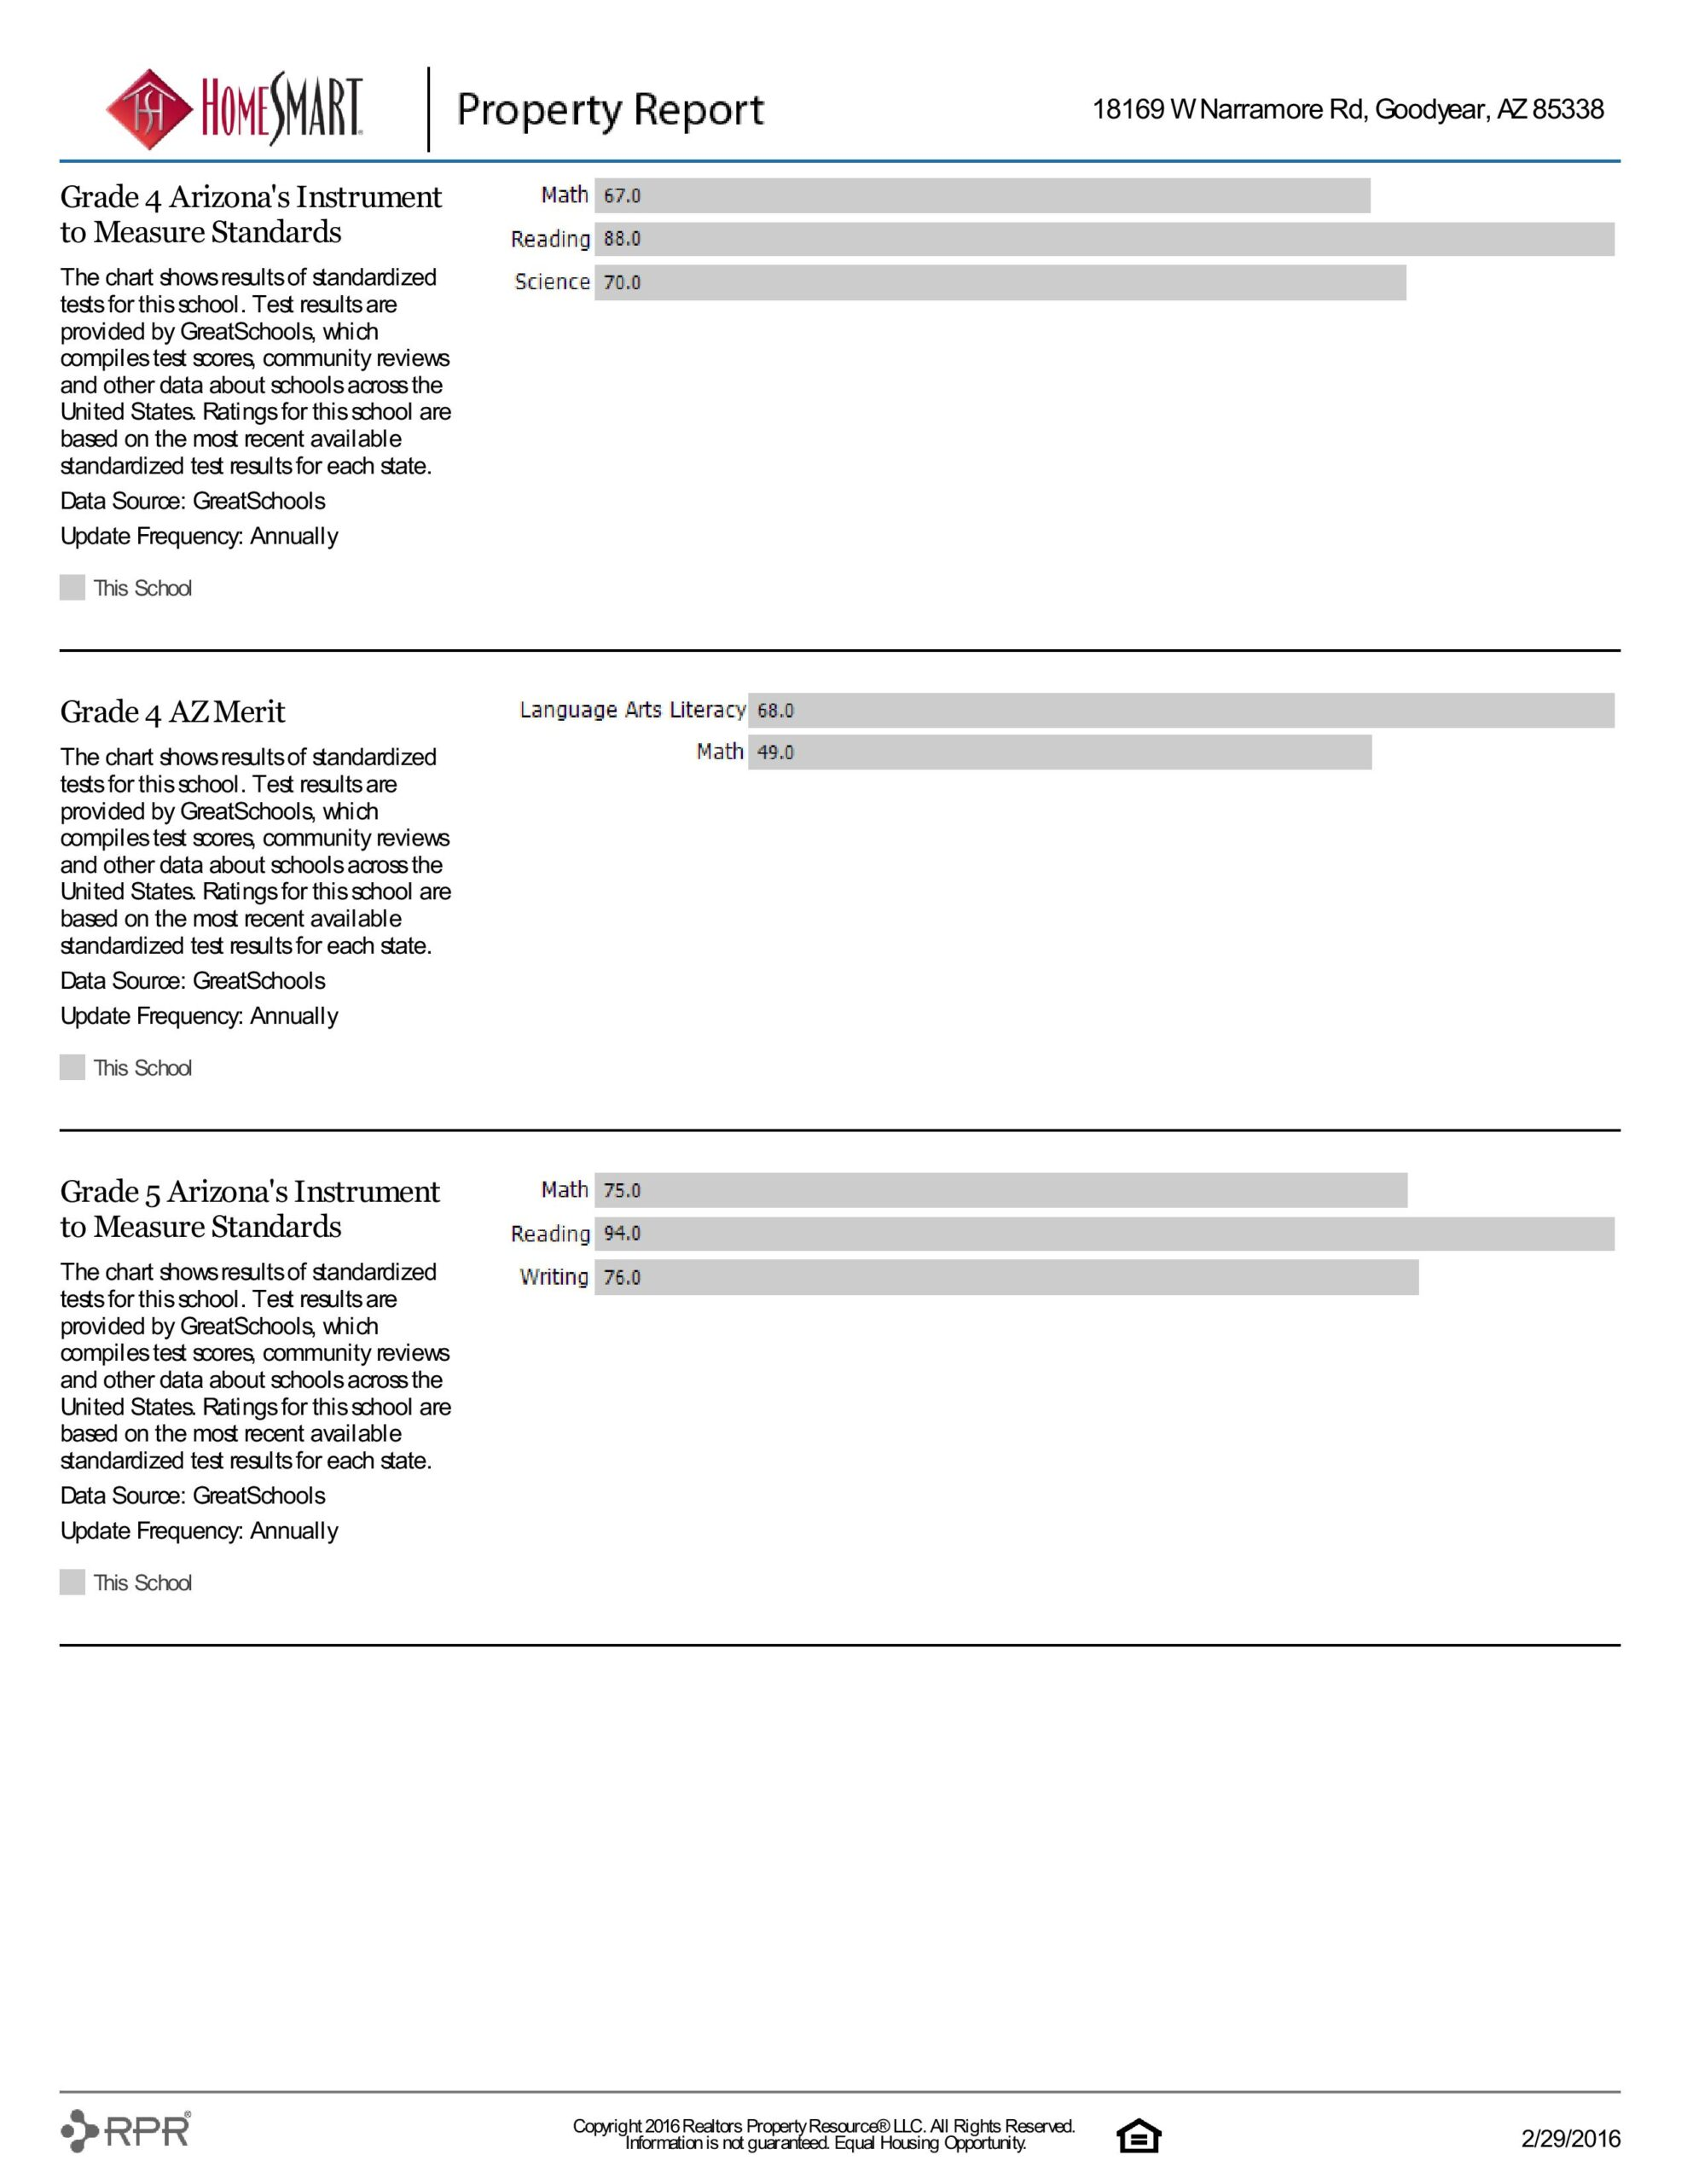 18169 W NARRAMORE RD PROPERTY REPORT-page-040